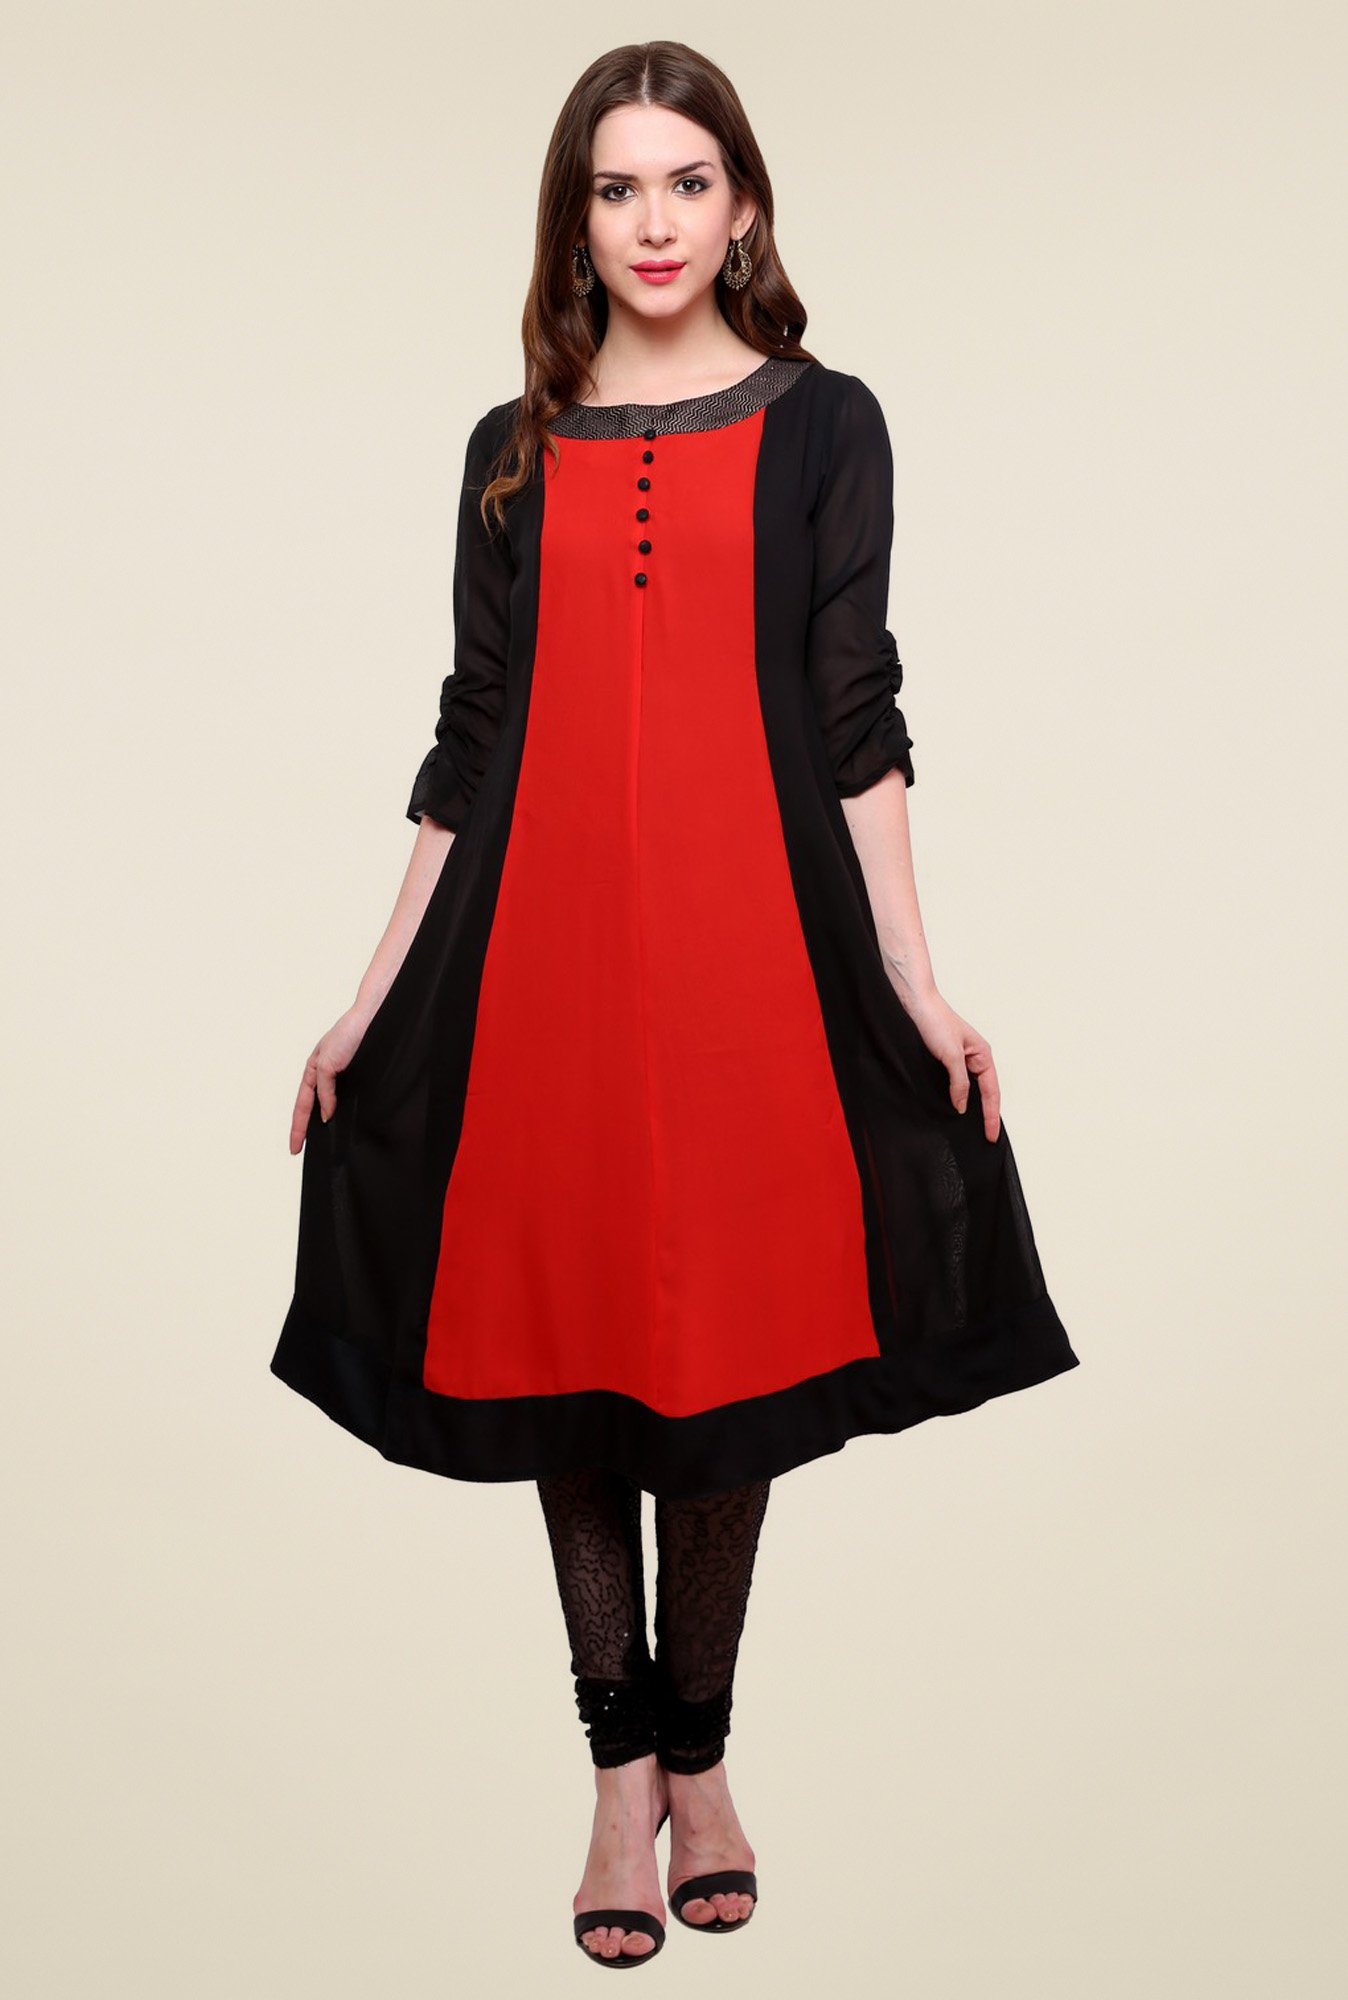 Pannkh Black & Red Round Neck Kurti